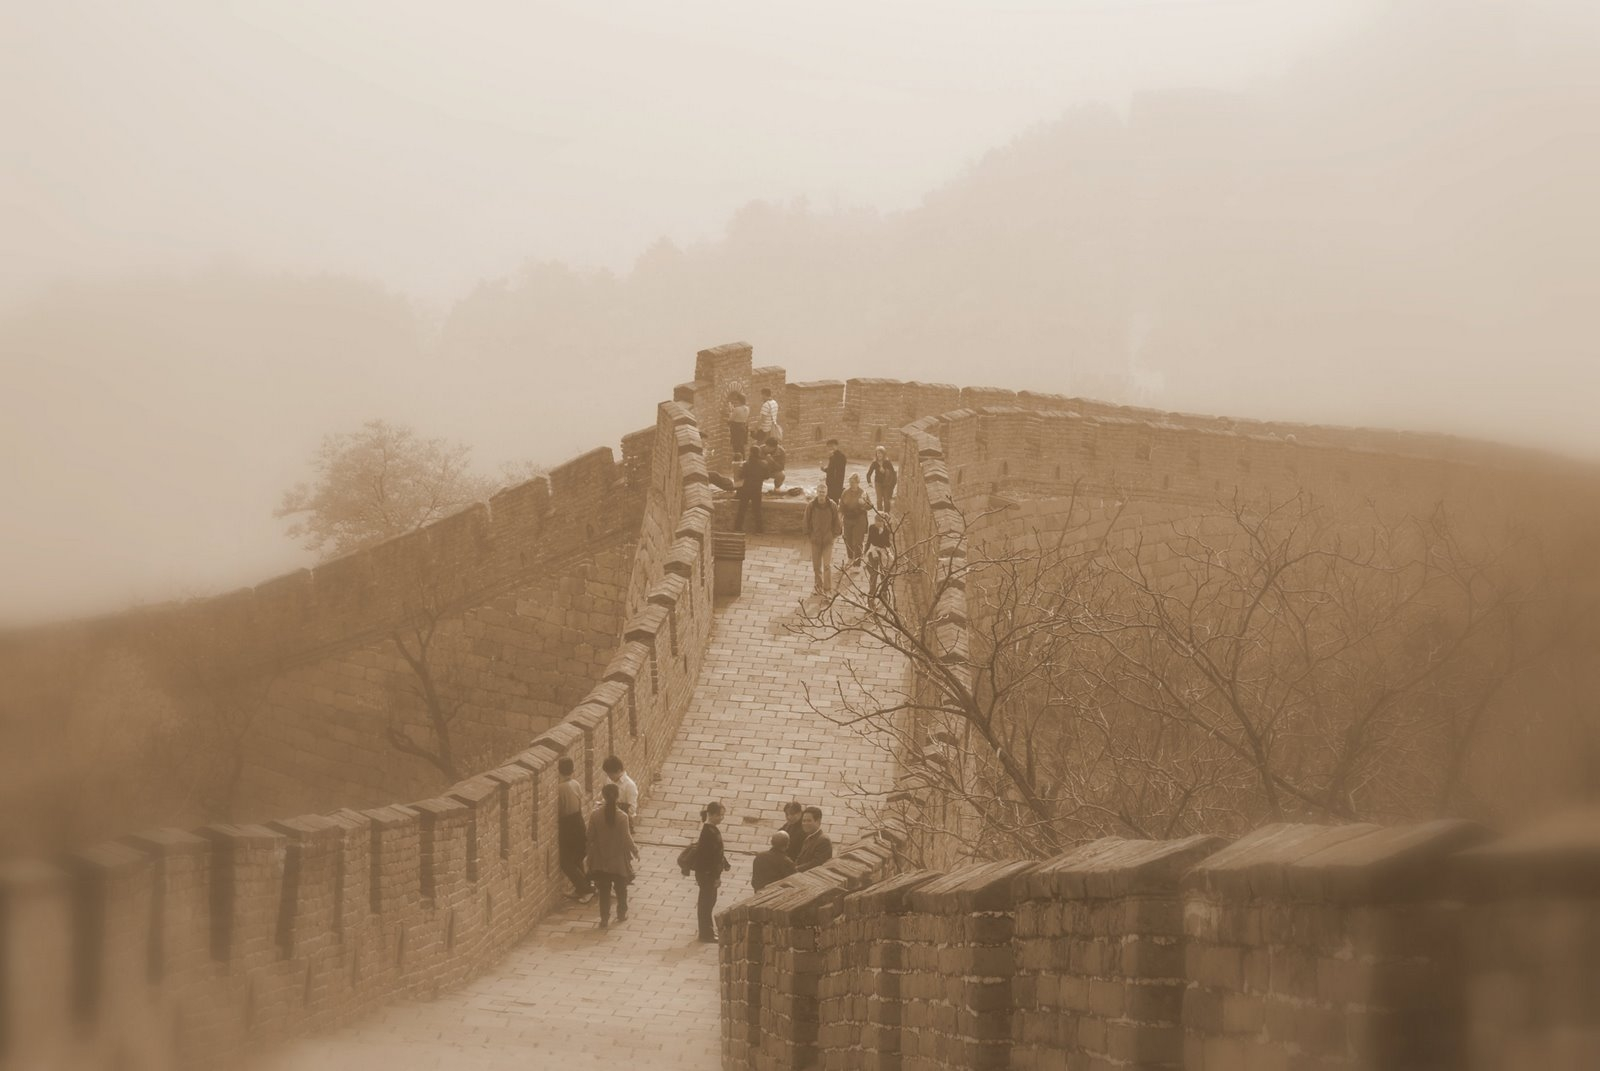 maria poole - Pesti_P_PL_60_dream of the Great Wall[1].jpg